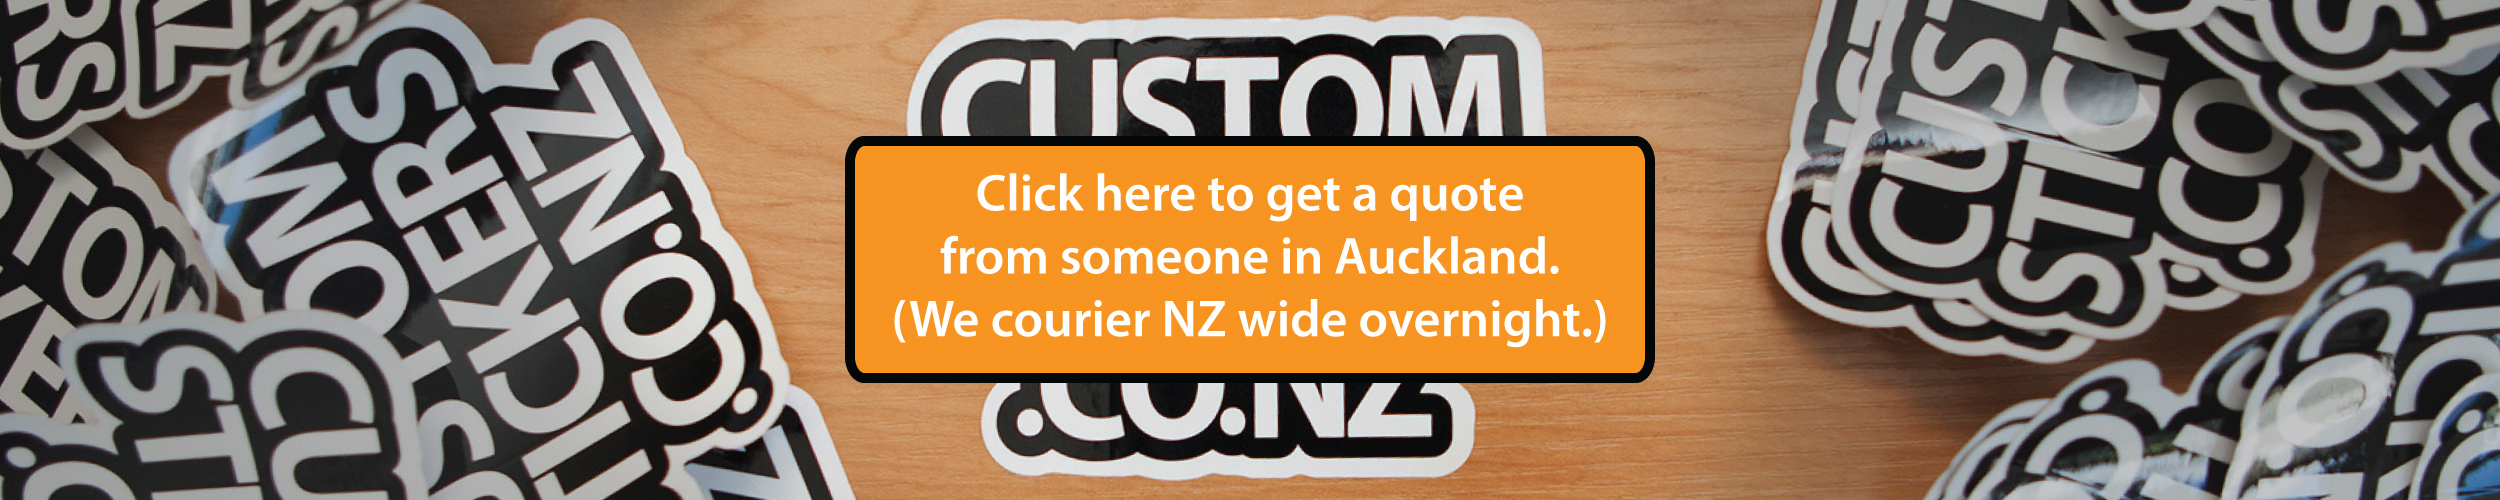 slider-get-a-sticker-quote-from-someone-in-auckland